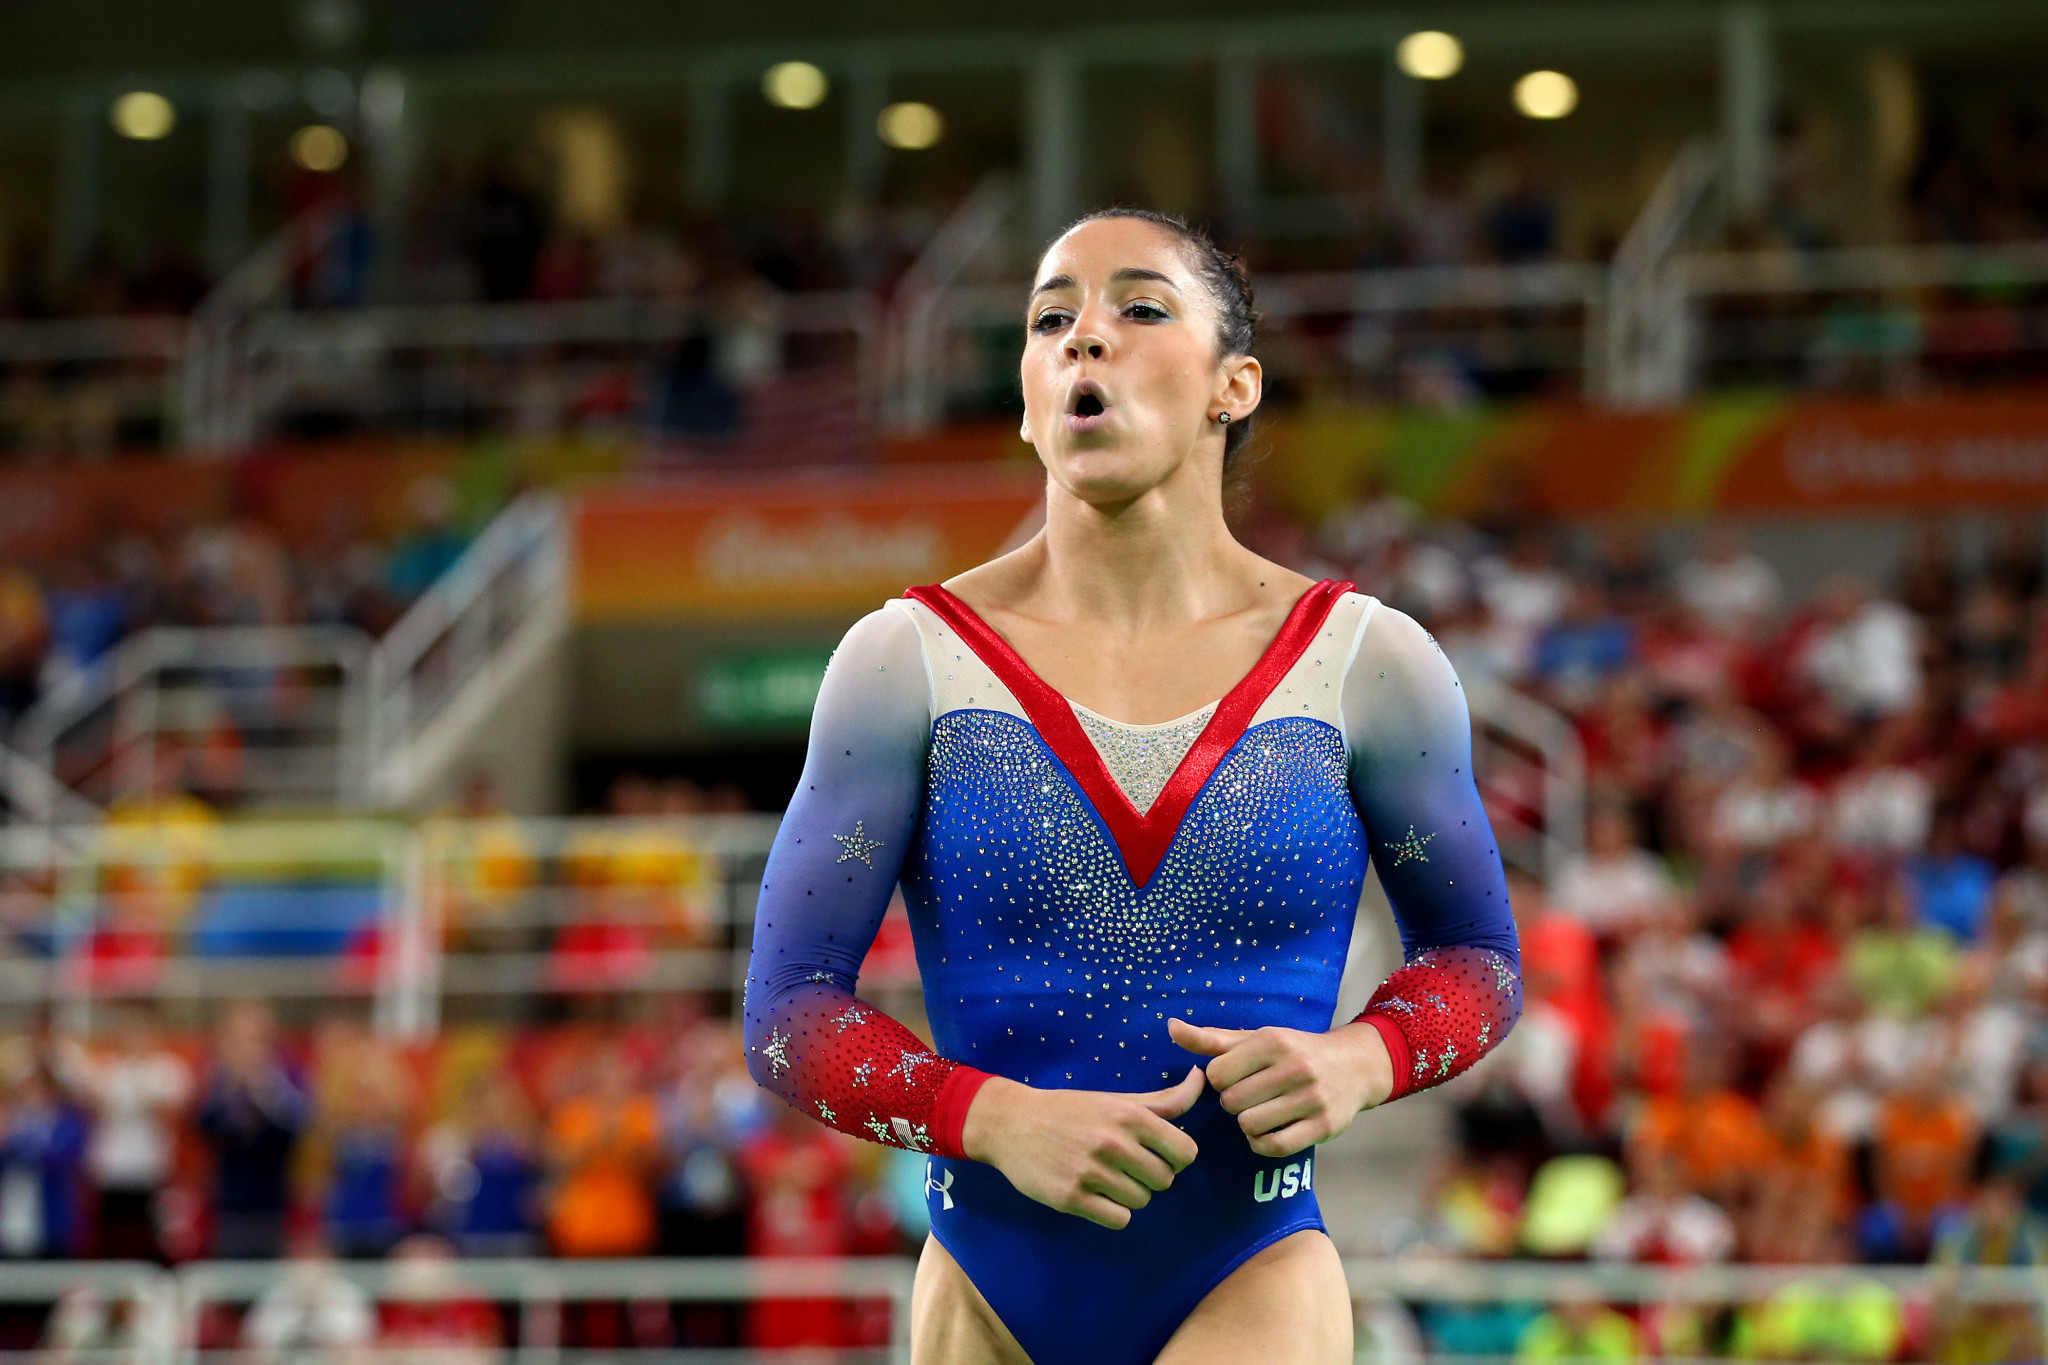 Raisman sues USOC and USA Gymnastics over Nassar scandal, report says